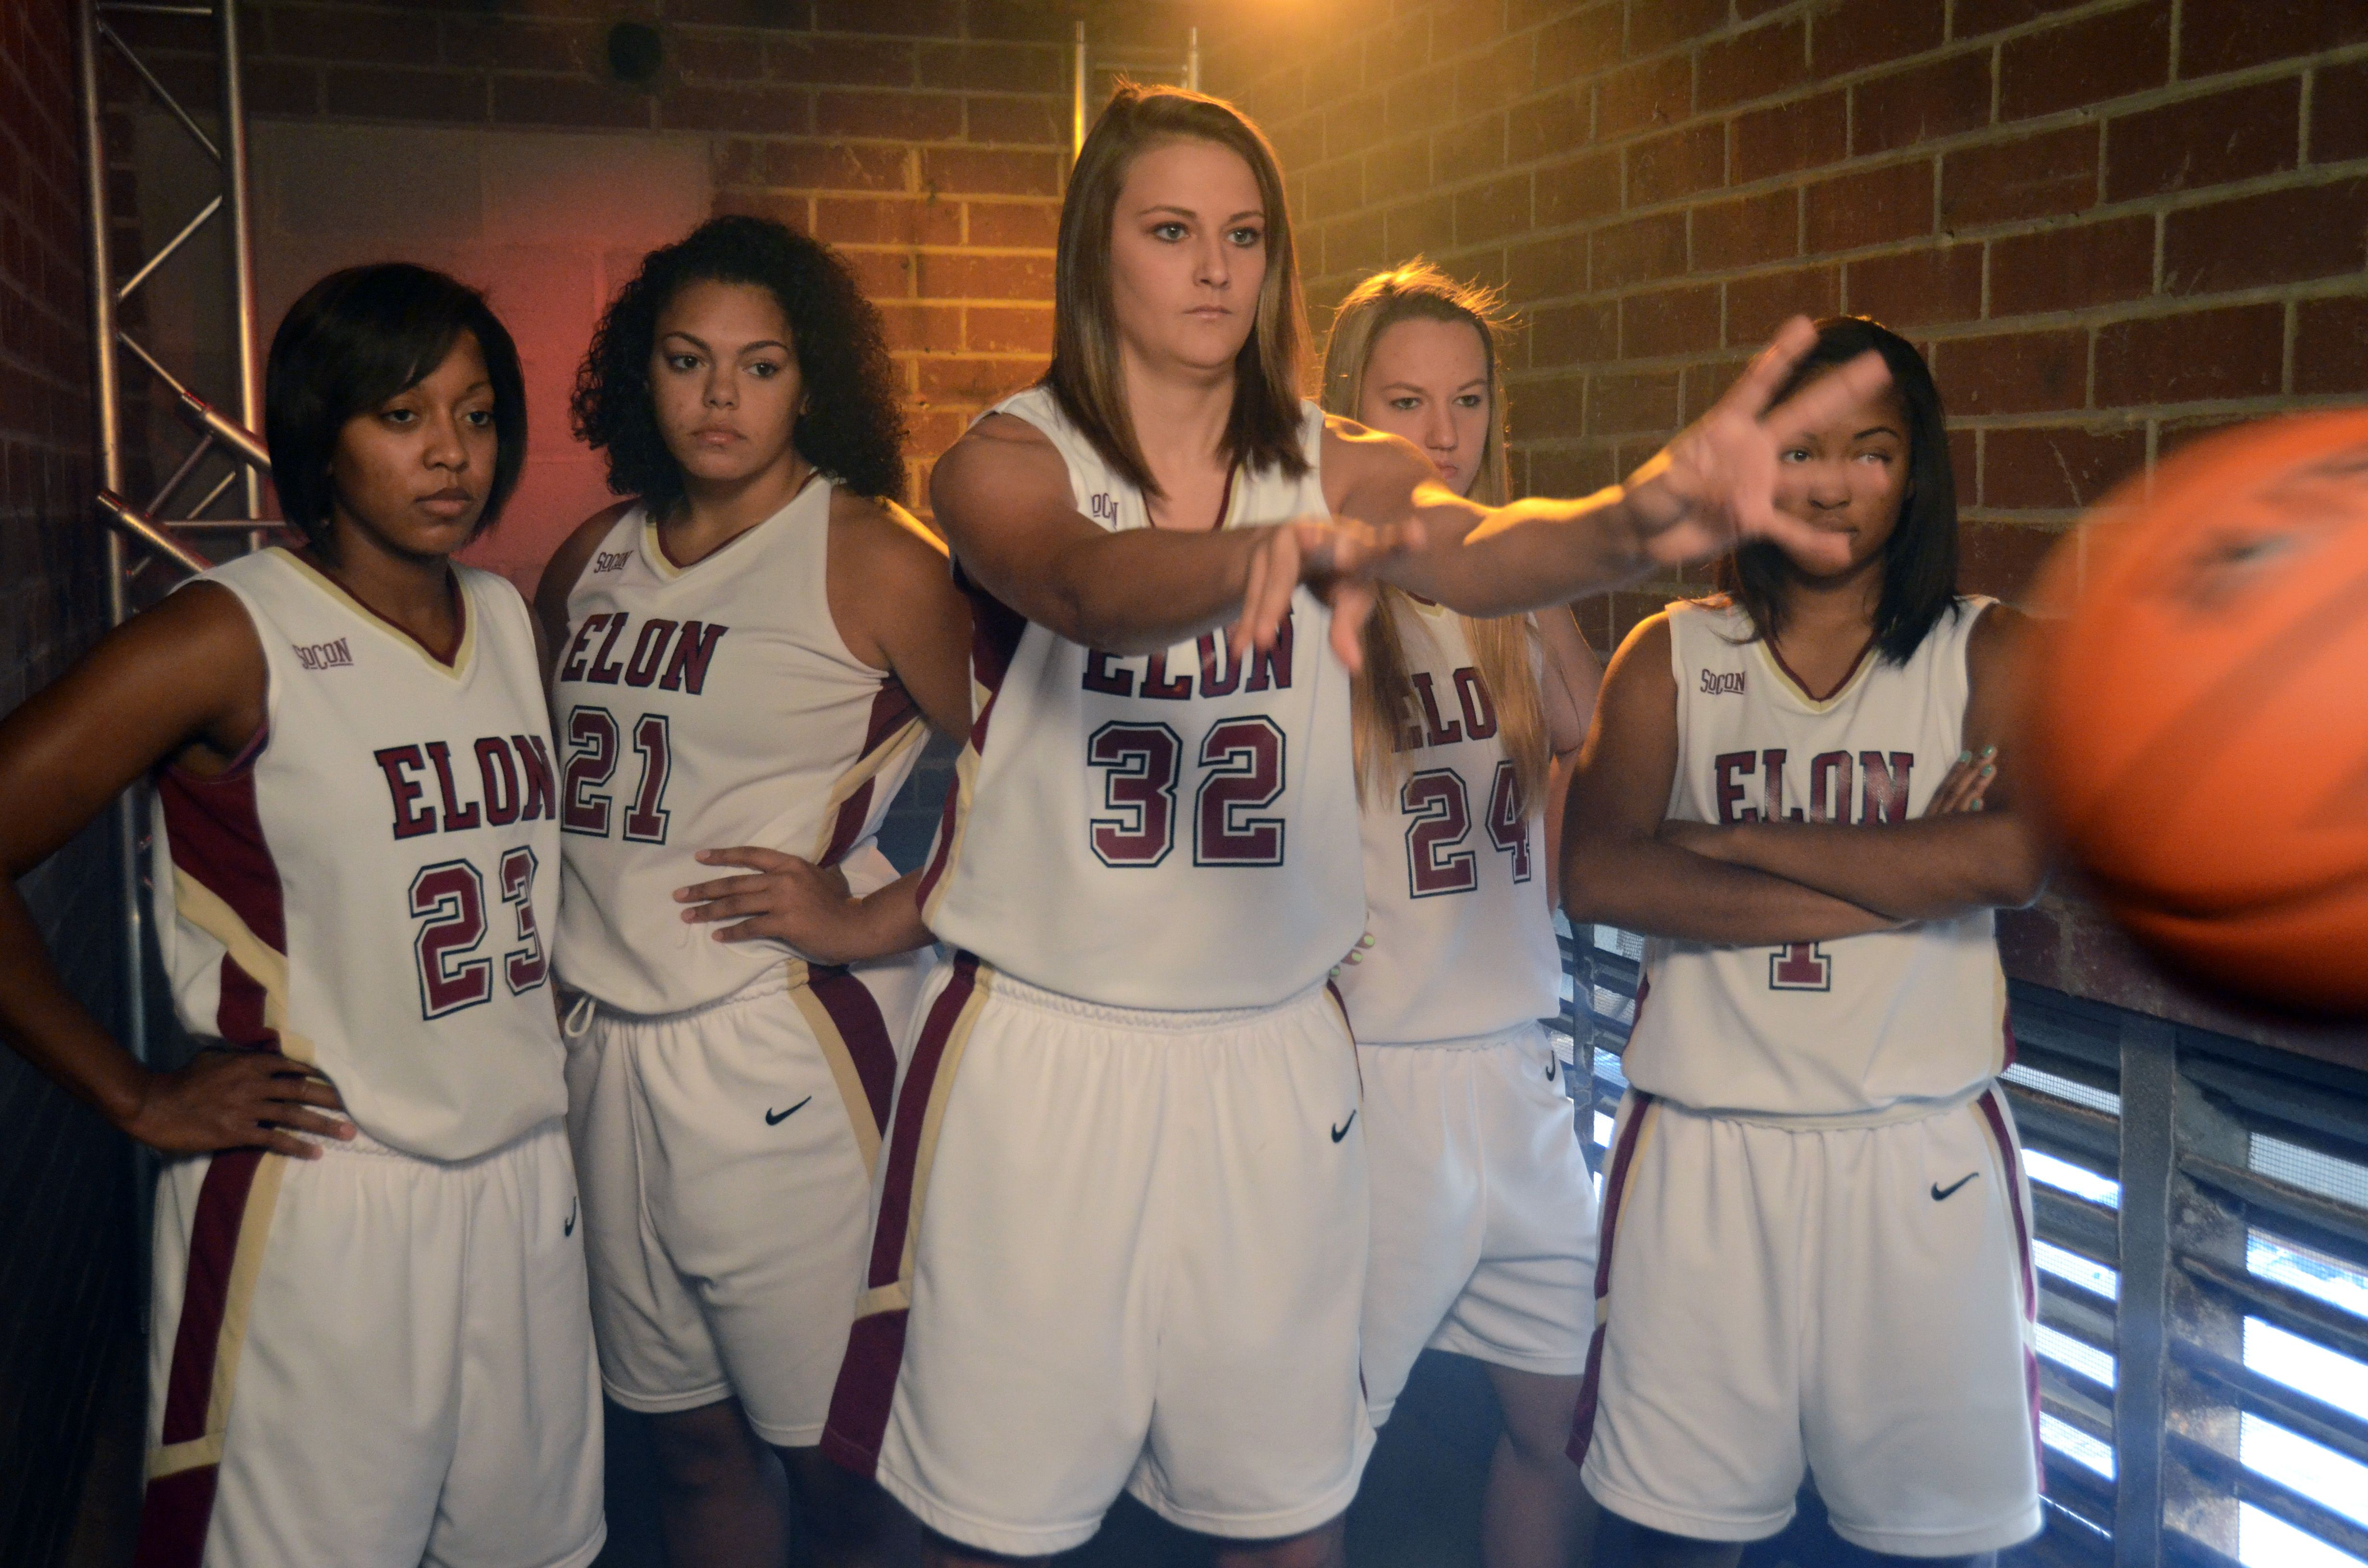 Here S A Behind The Scenes Look At This Week S Shoot For The Elon Women S Basketball Team 2013 2014 I Girls Athletic Wear Womens Basketball University Athlete